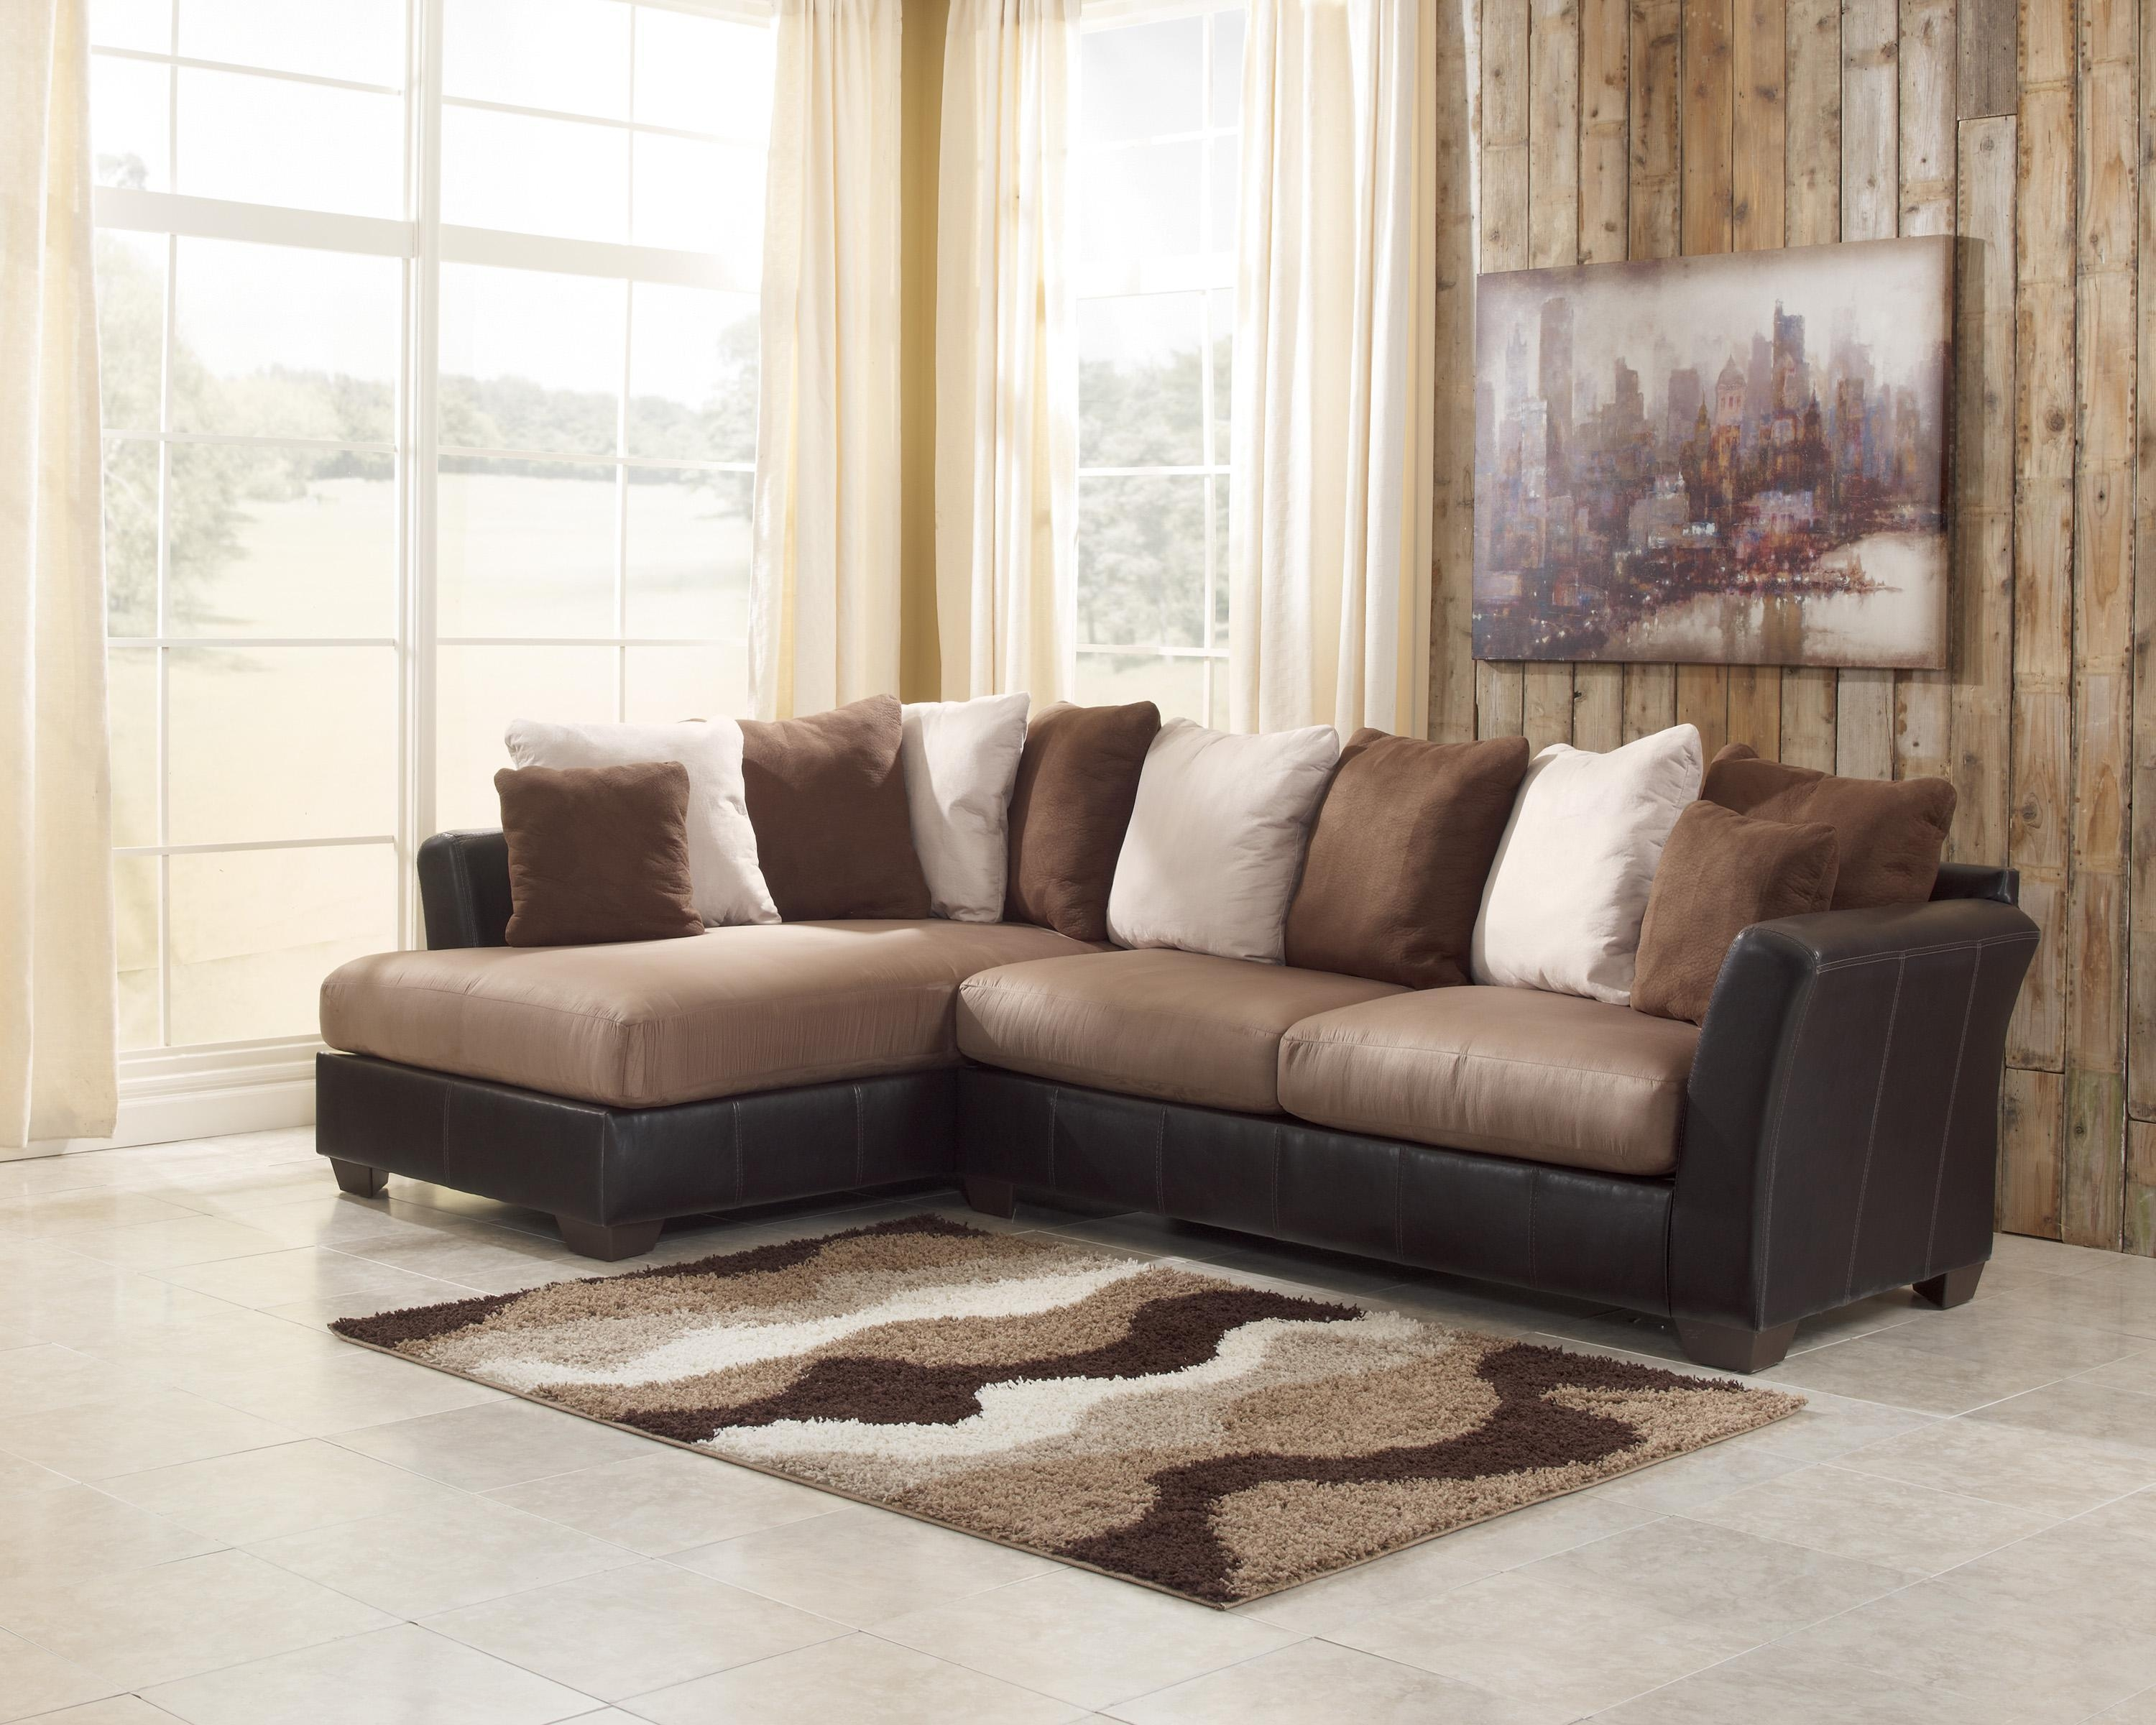 2 Piece Sectional Sofa Leather | Tehranmix Decoration pertaining to 2 Piece Sofas